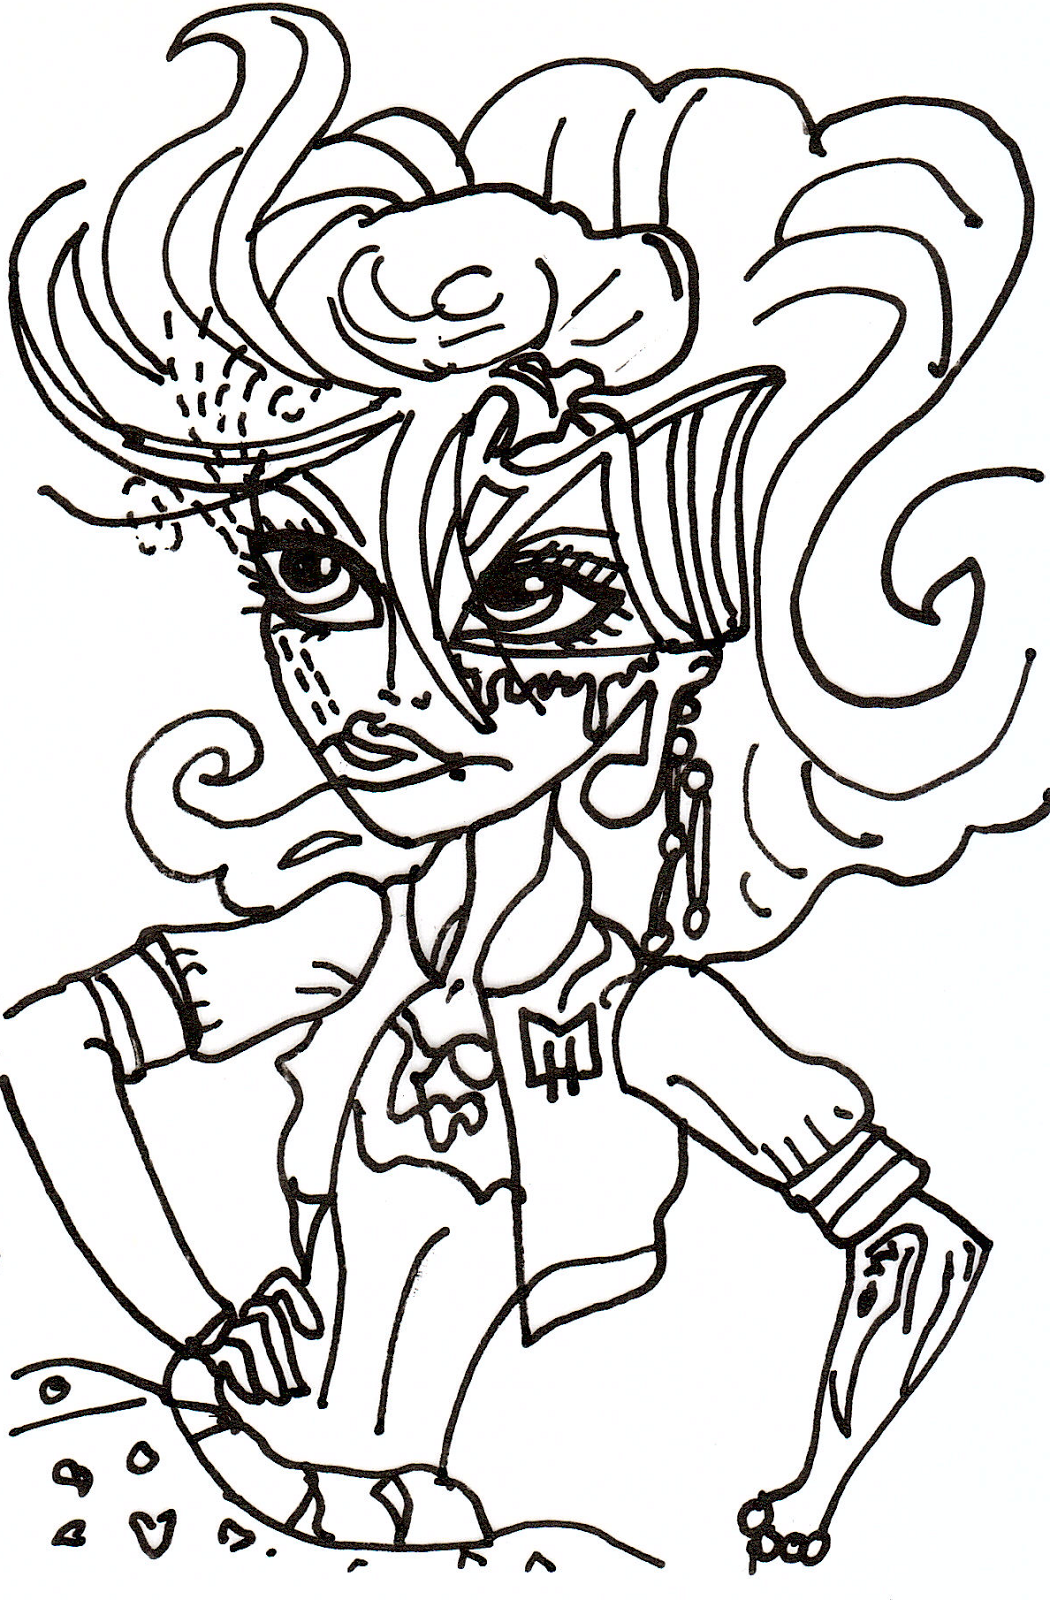 Free printable monster high coloring pages may 2013 for Operetta monster high coloring pages